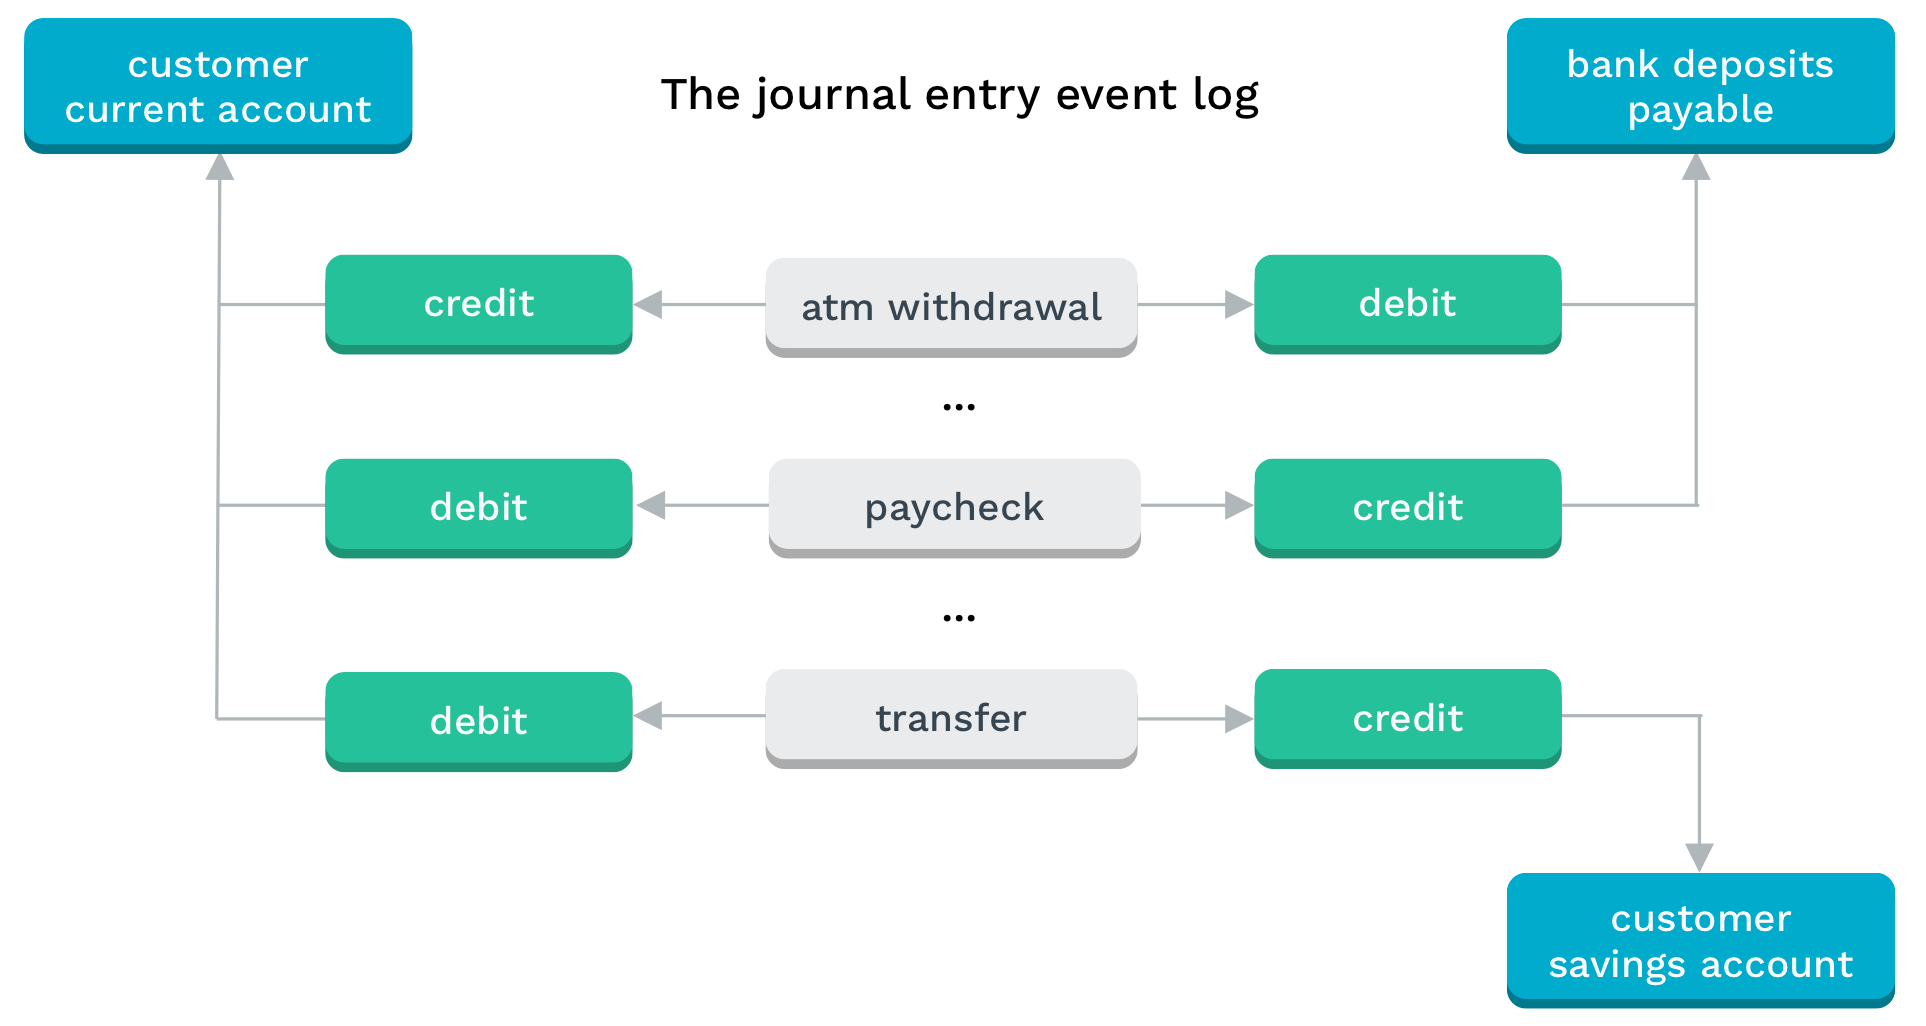 Diagram showing the journal entry event log and its linkages to various accounts